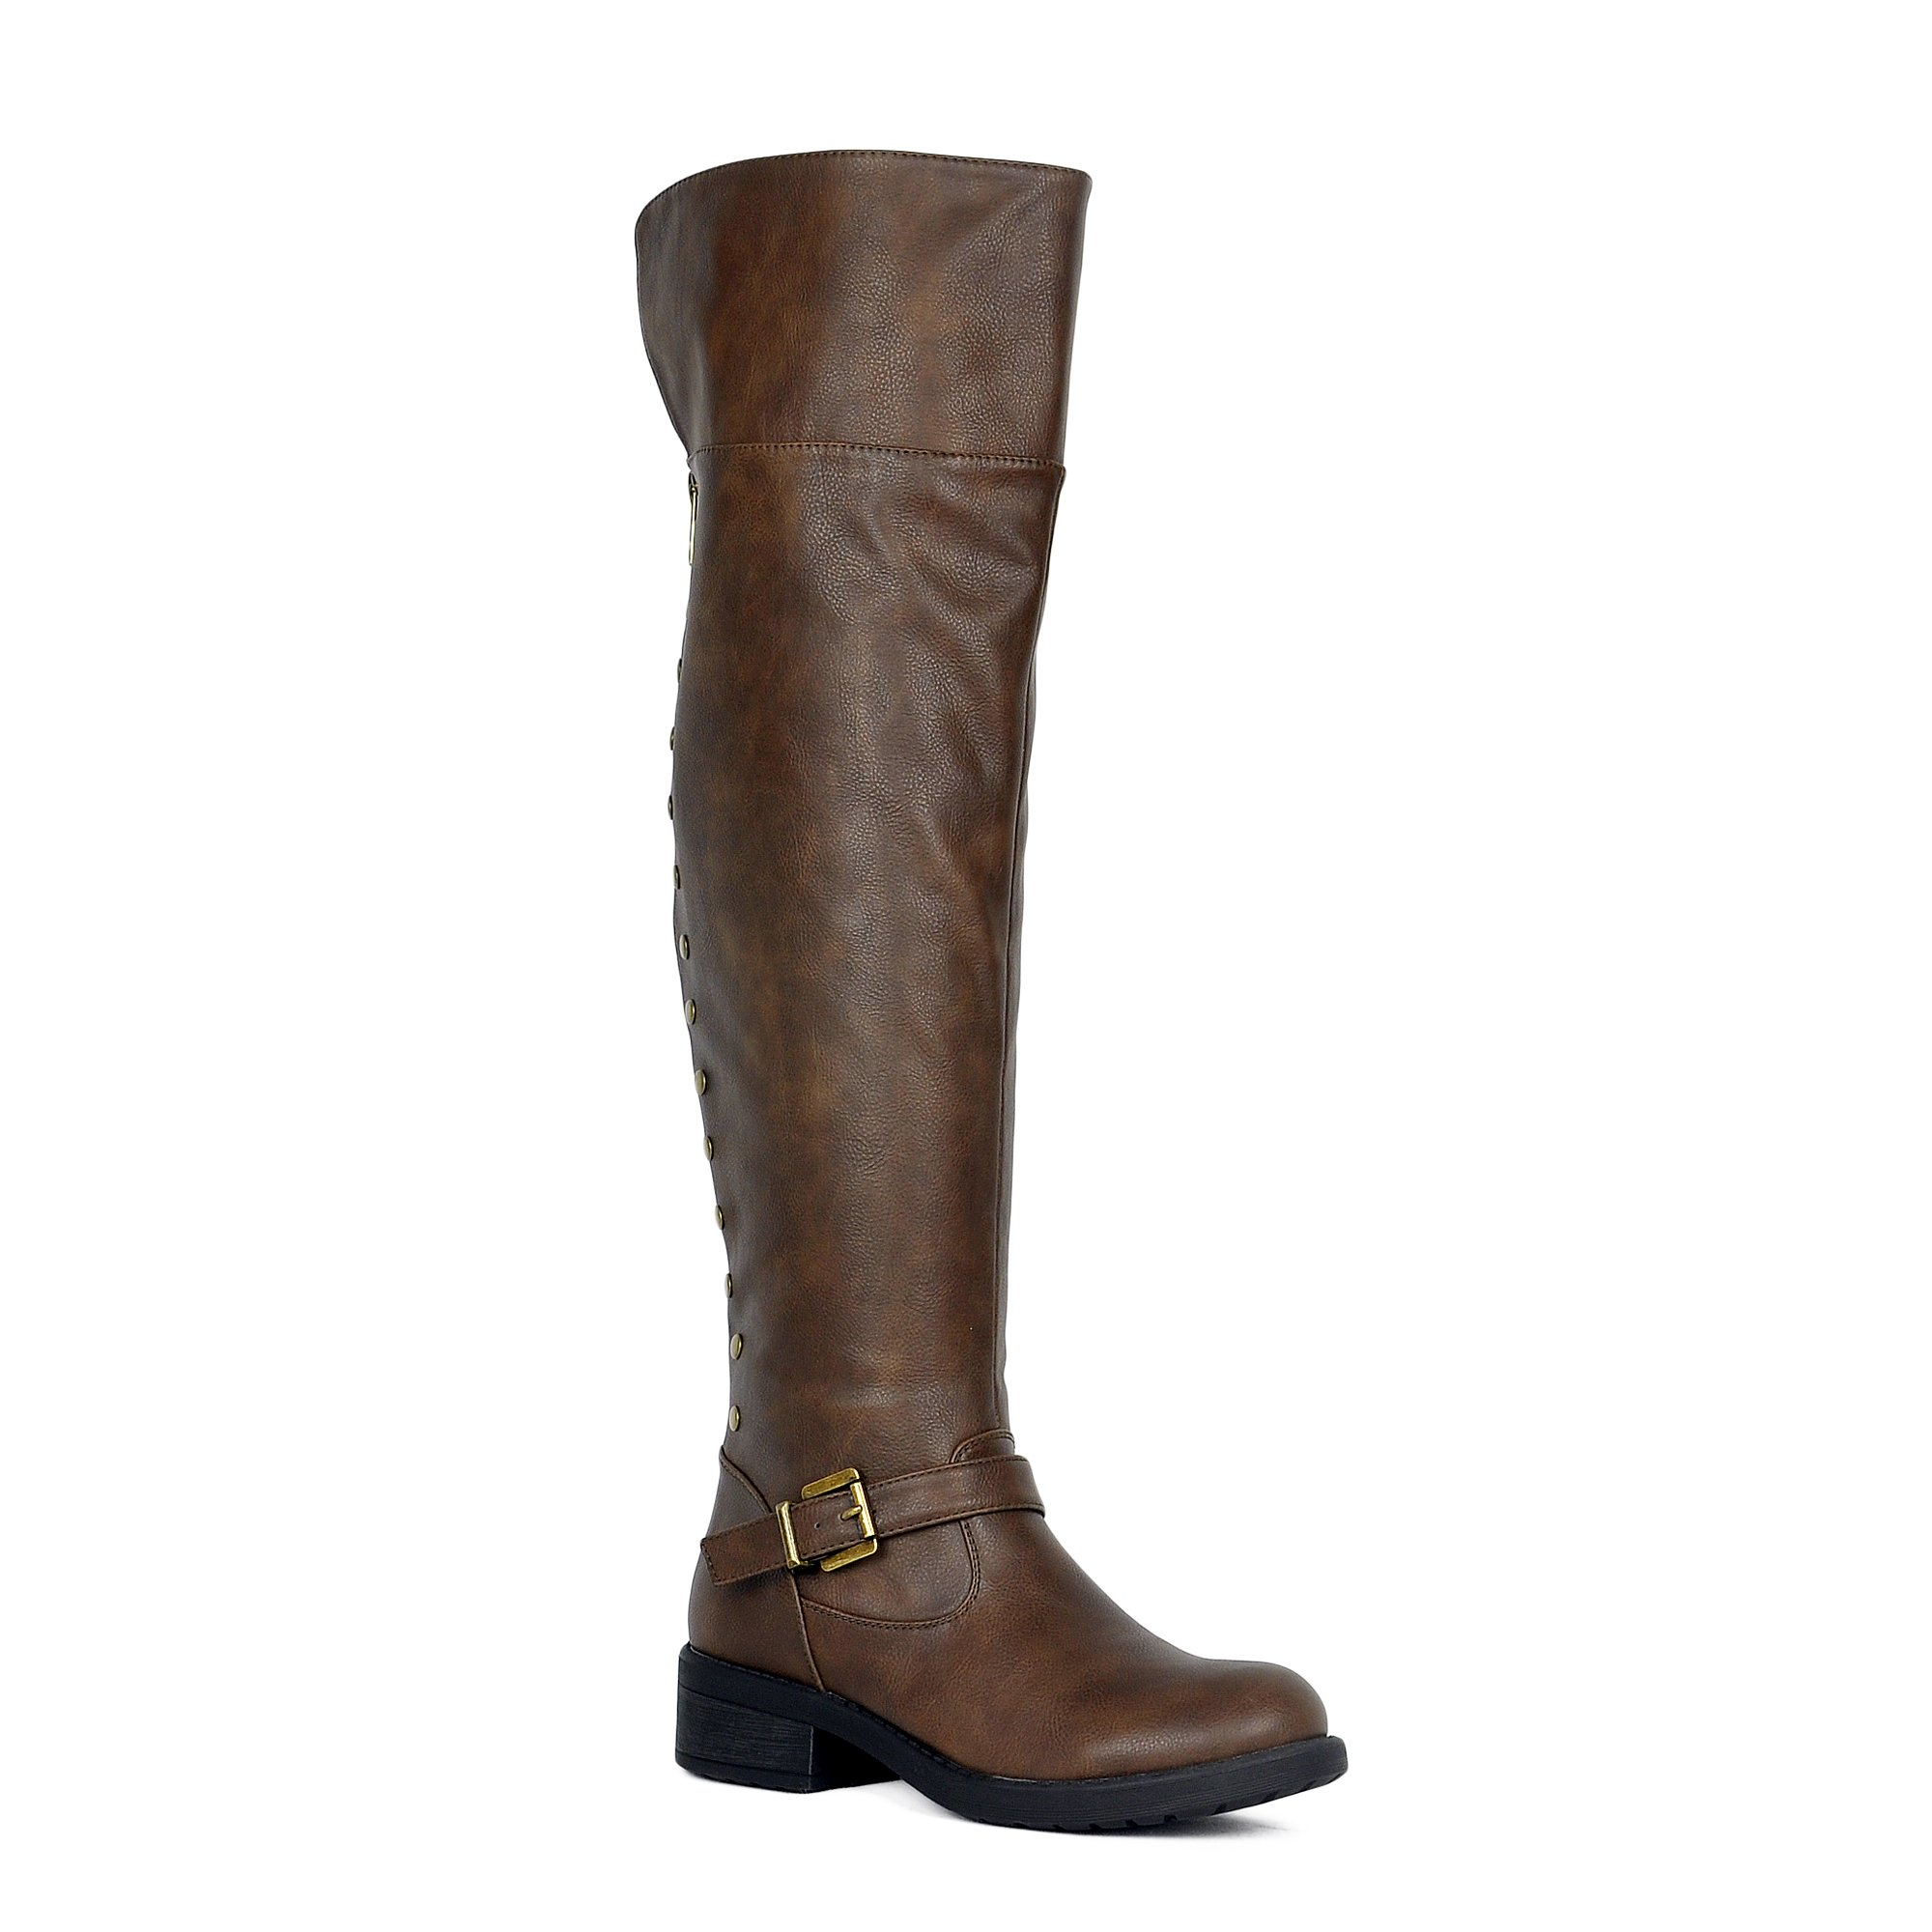 WestCoast Womens Over The Knee Boots Folding Cuff Back Zipper up Studded Motor Thigh High Riding Boots Brown 7.5